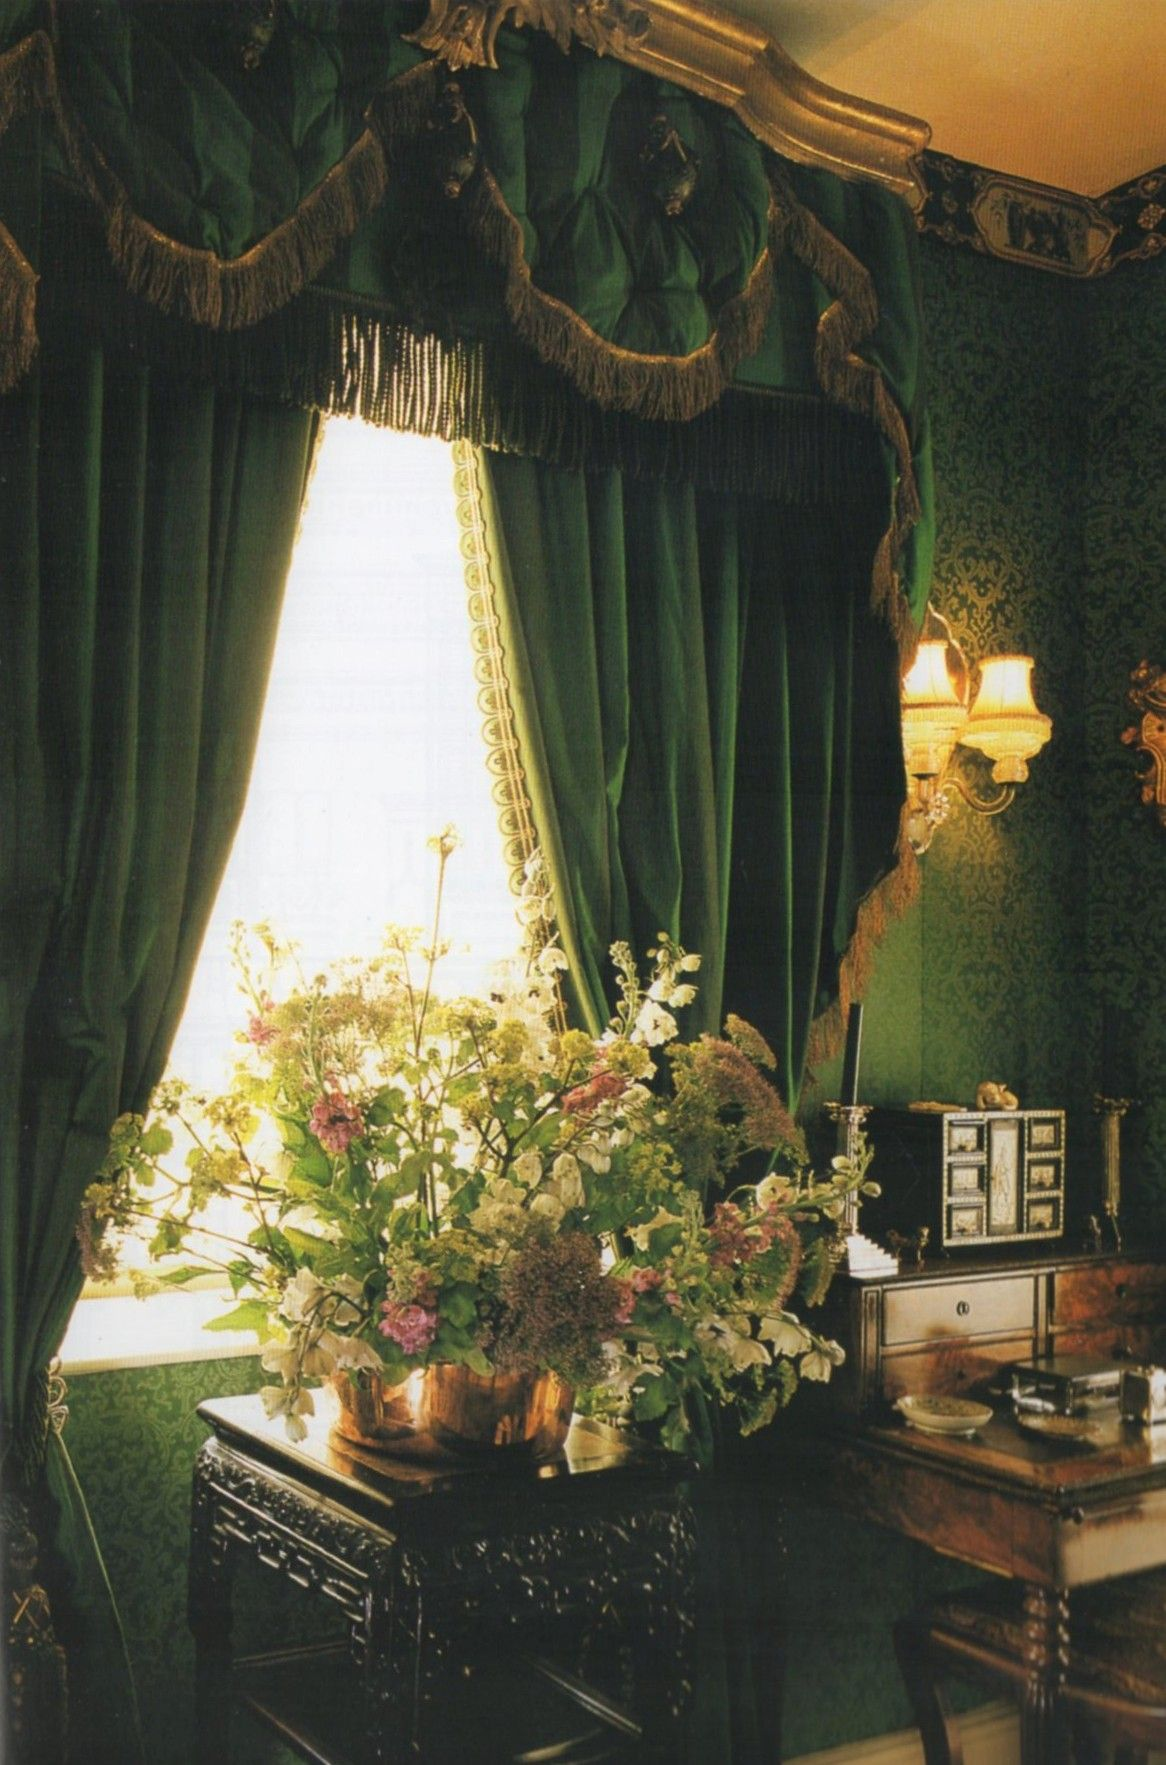 Sumptuous Emerald Velvet Draperies Richly Detailed In Gold